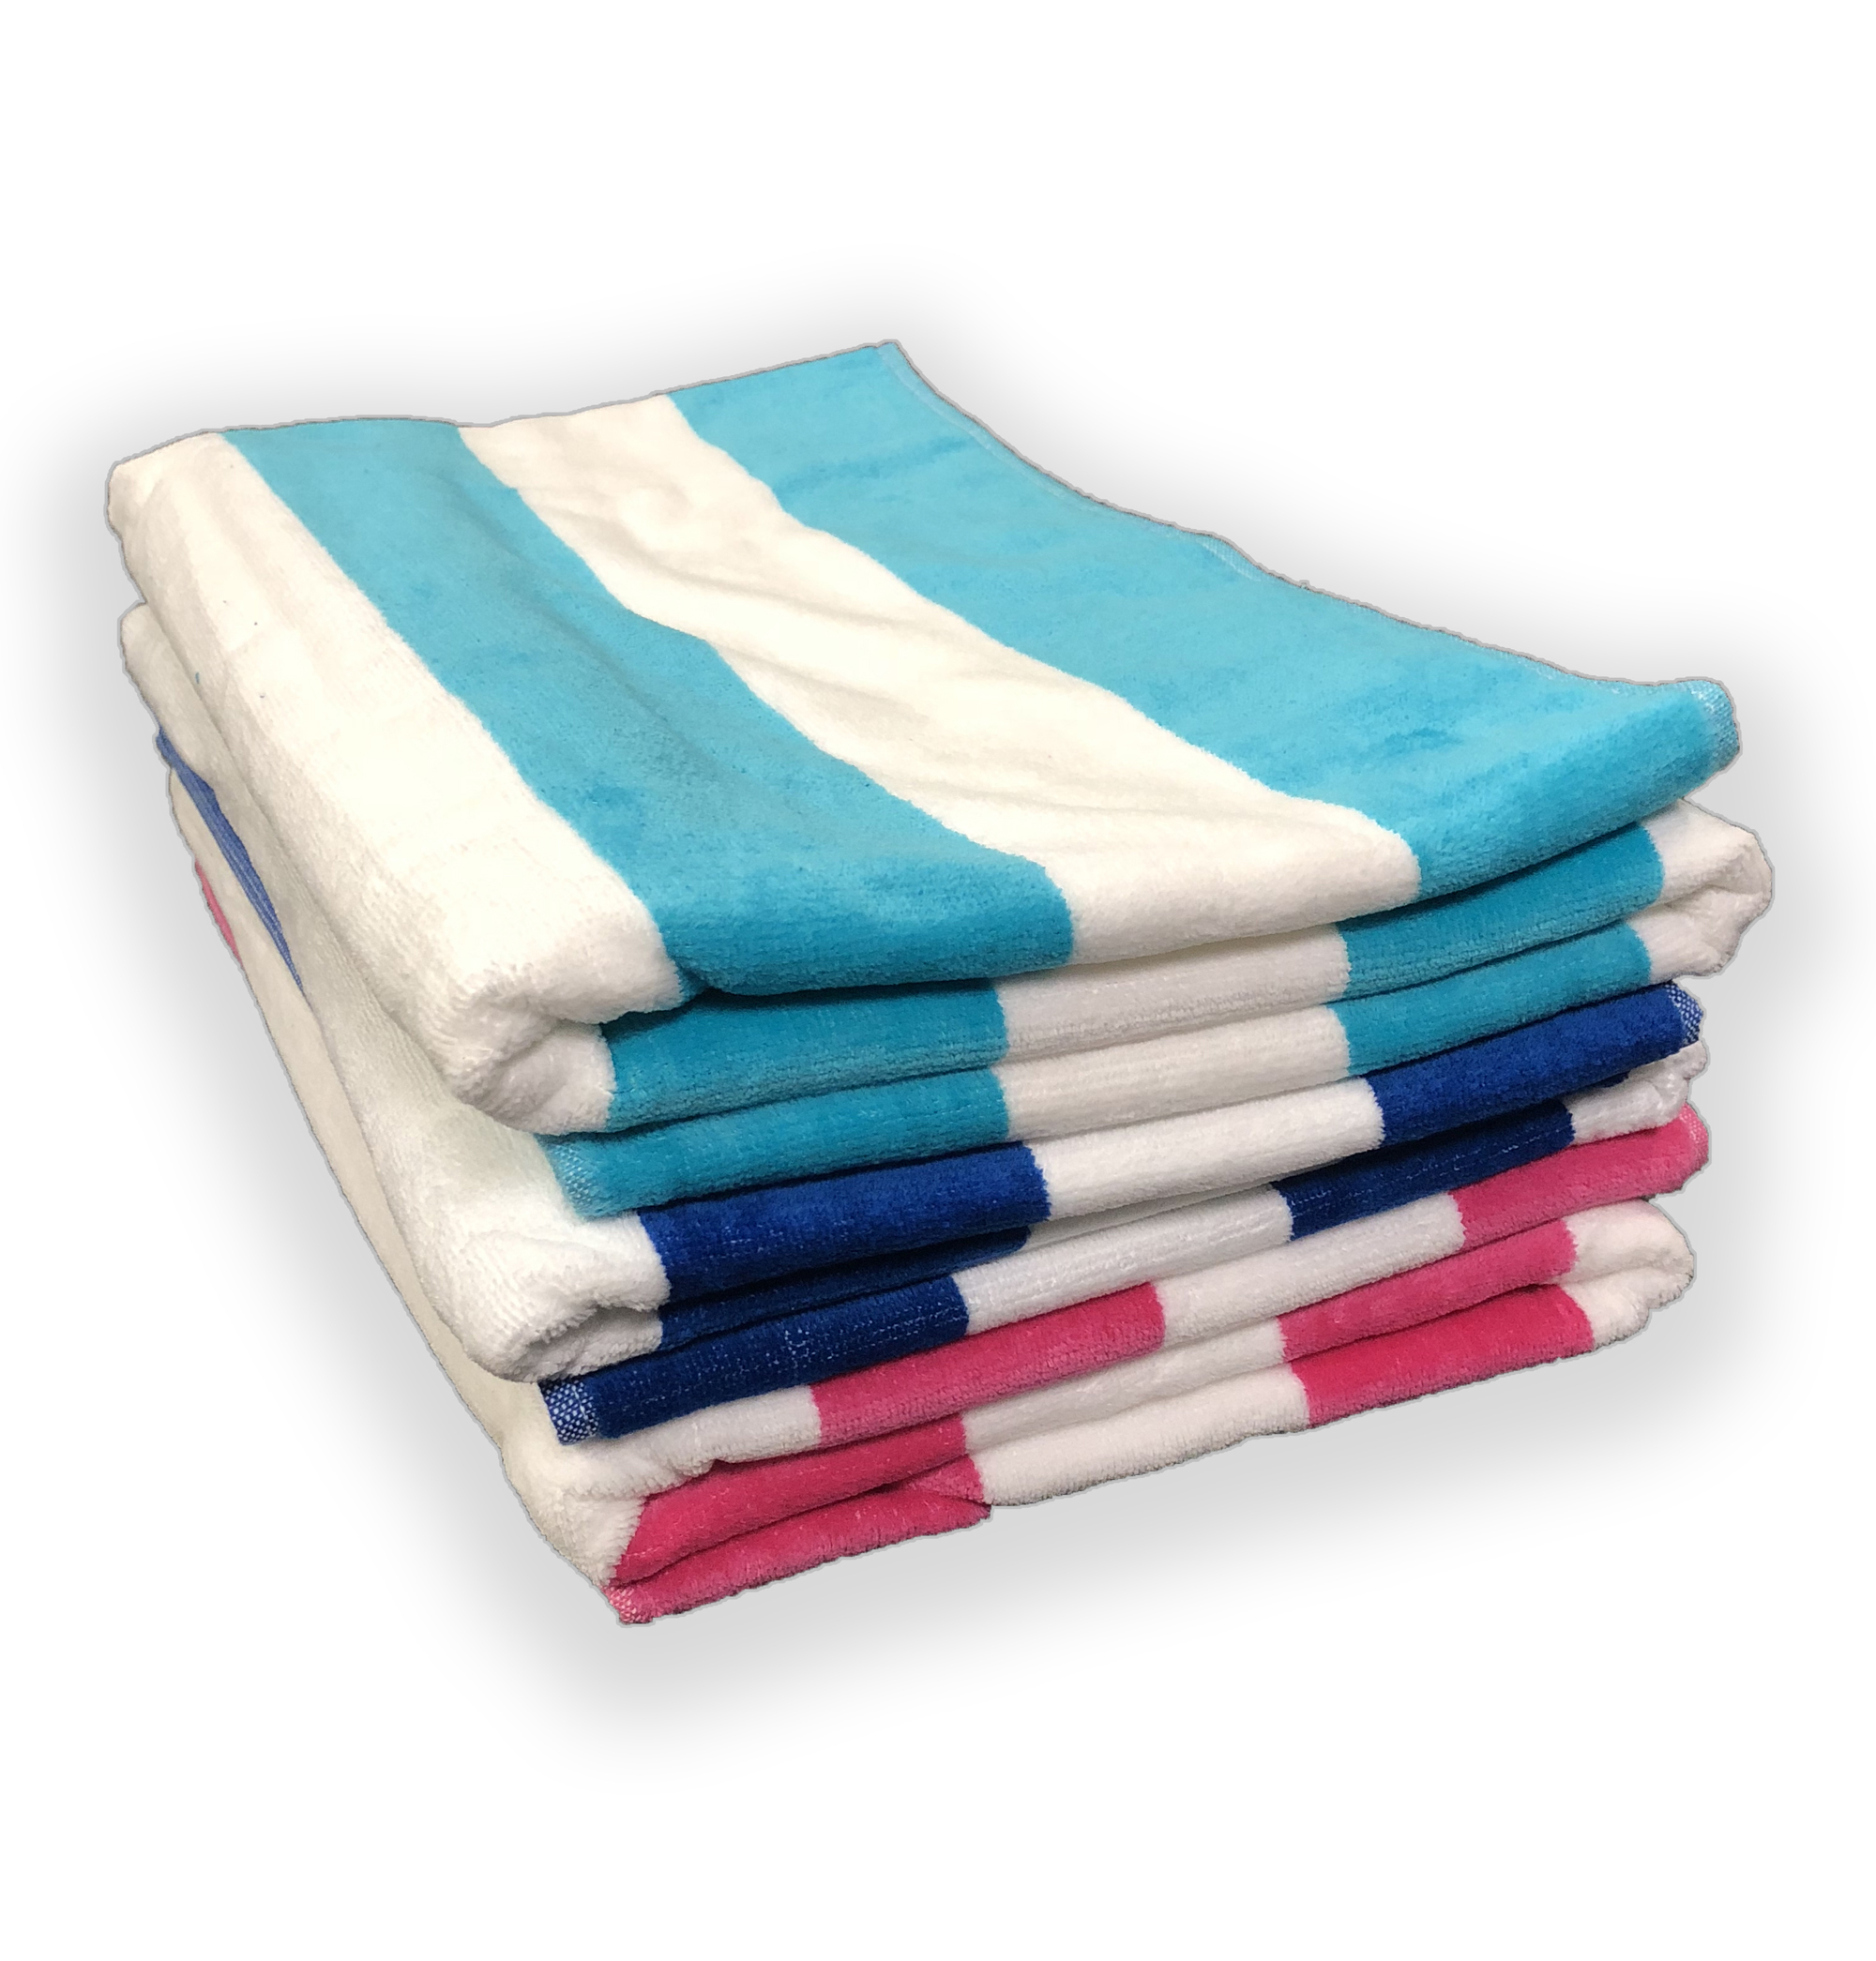 35x70 Terry Beach Towels Cotton Velour Cabana Stripe 18.75 Lbs per Dz. 100% Cotton.